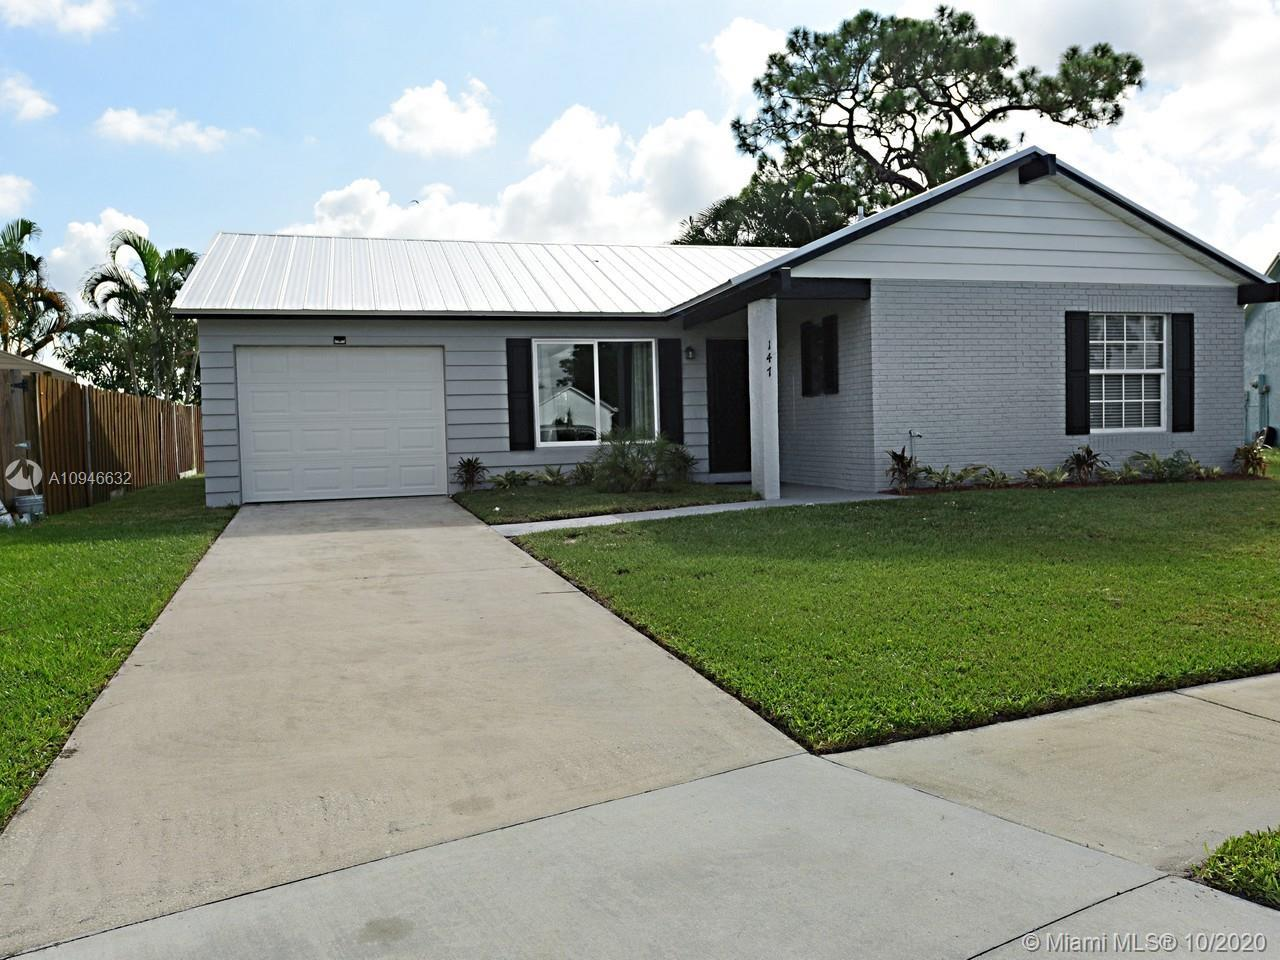 NEWLY PERMITTED ADDITION MAKES THIS A 4 BED 2 BATH HOME WITH 1459 UNDER AIR AND 1815 SQ FT TOTAL. Co